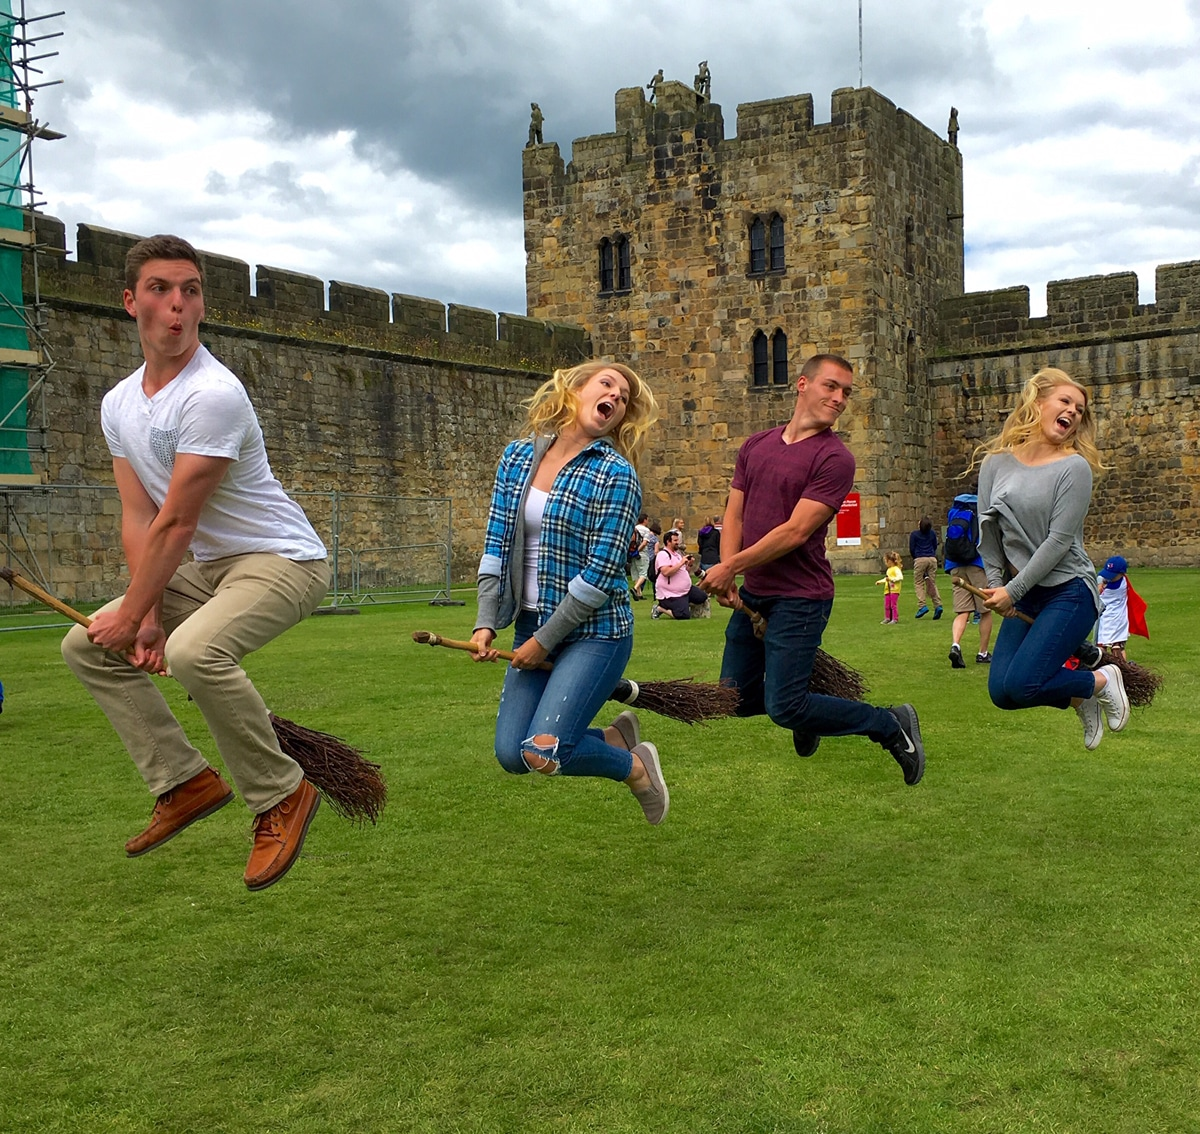 4 people jump in the air,pretending to fly broomsticks at Alnwick Castle